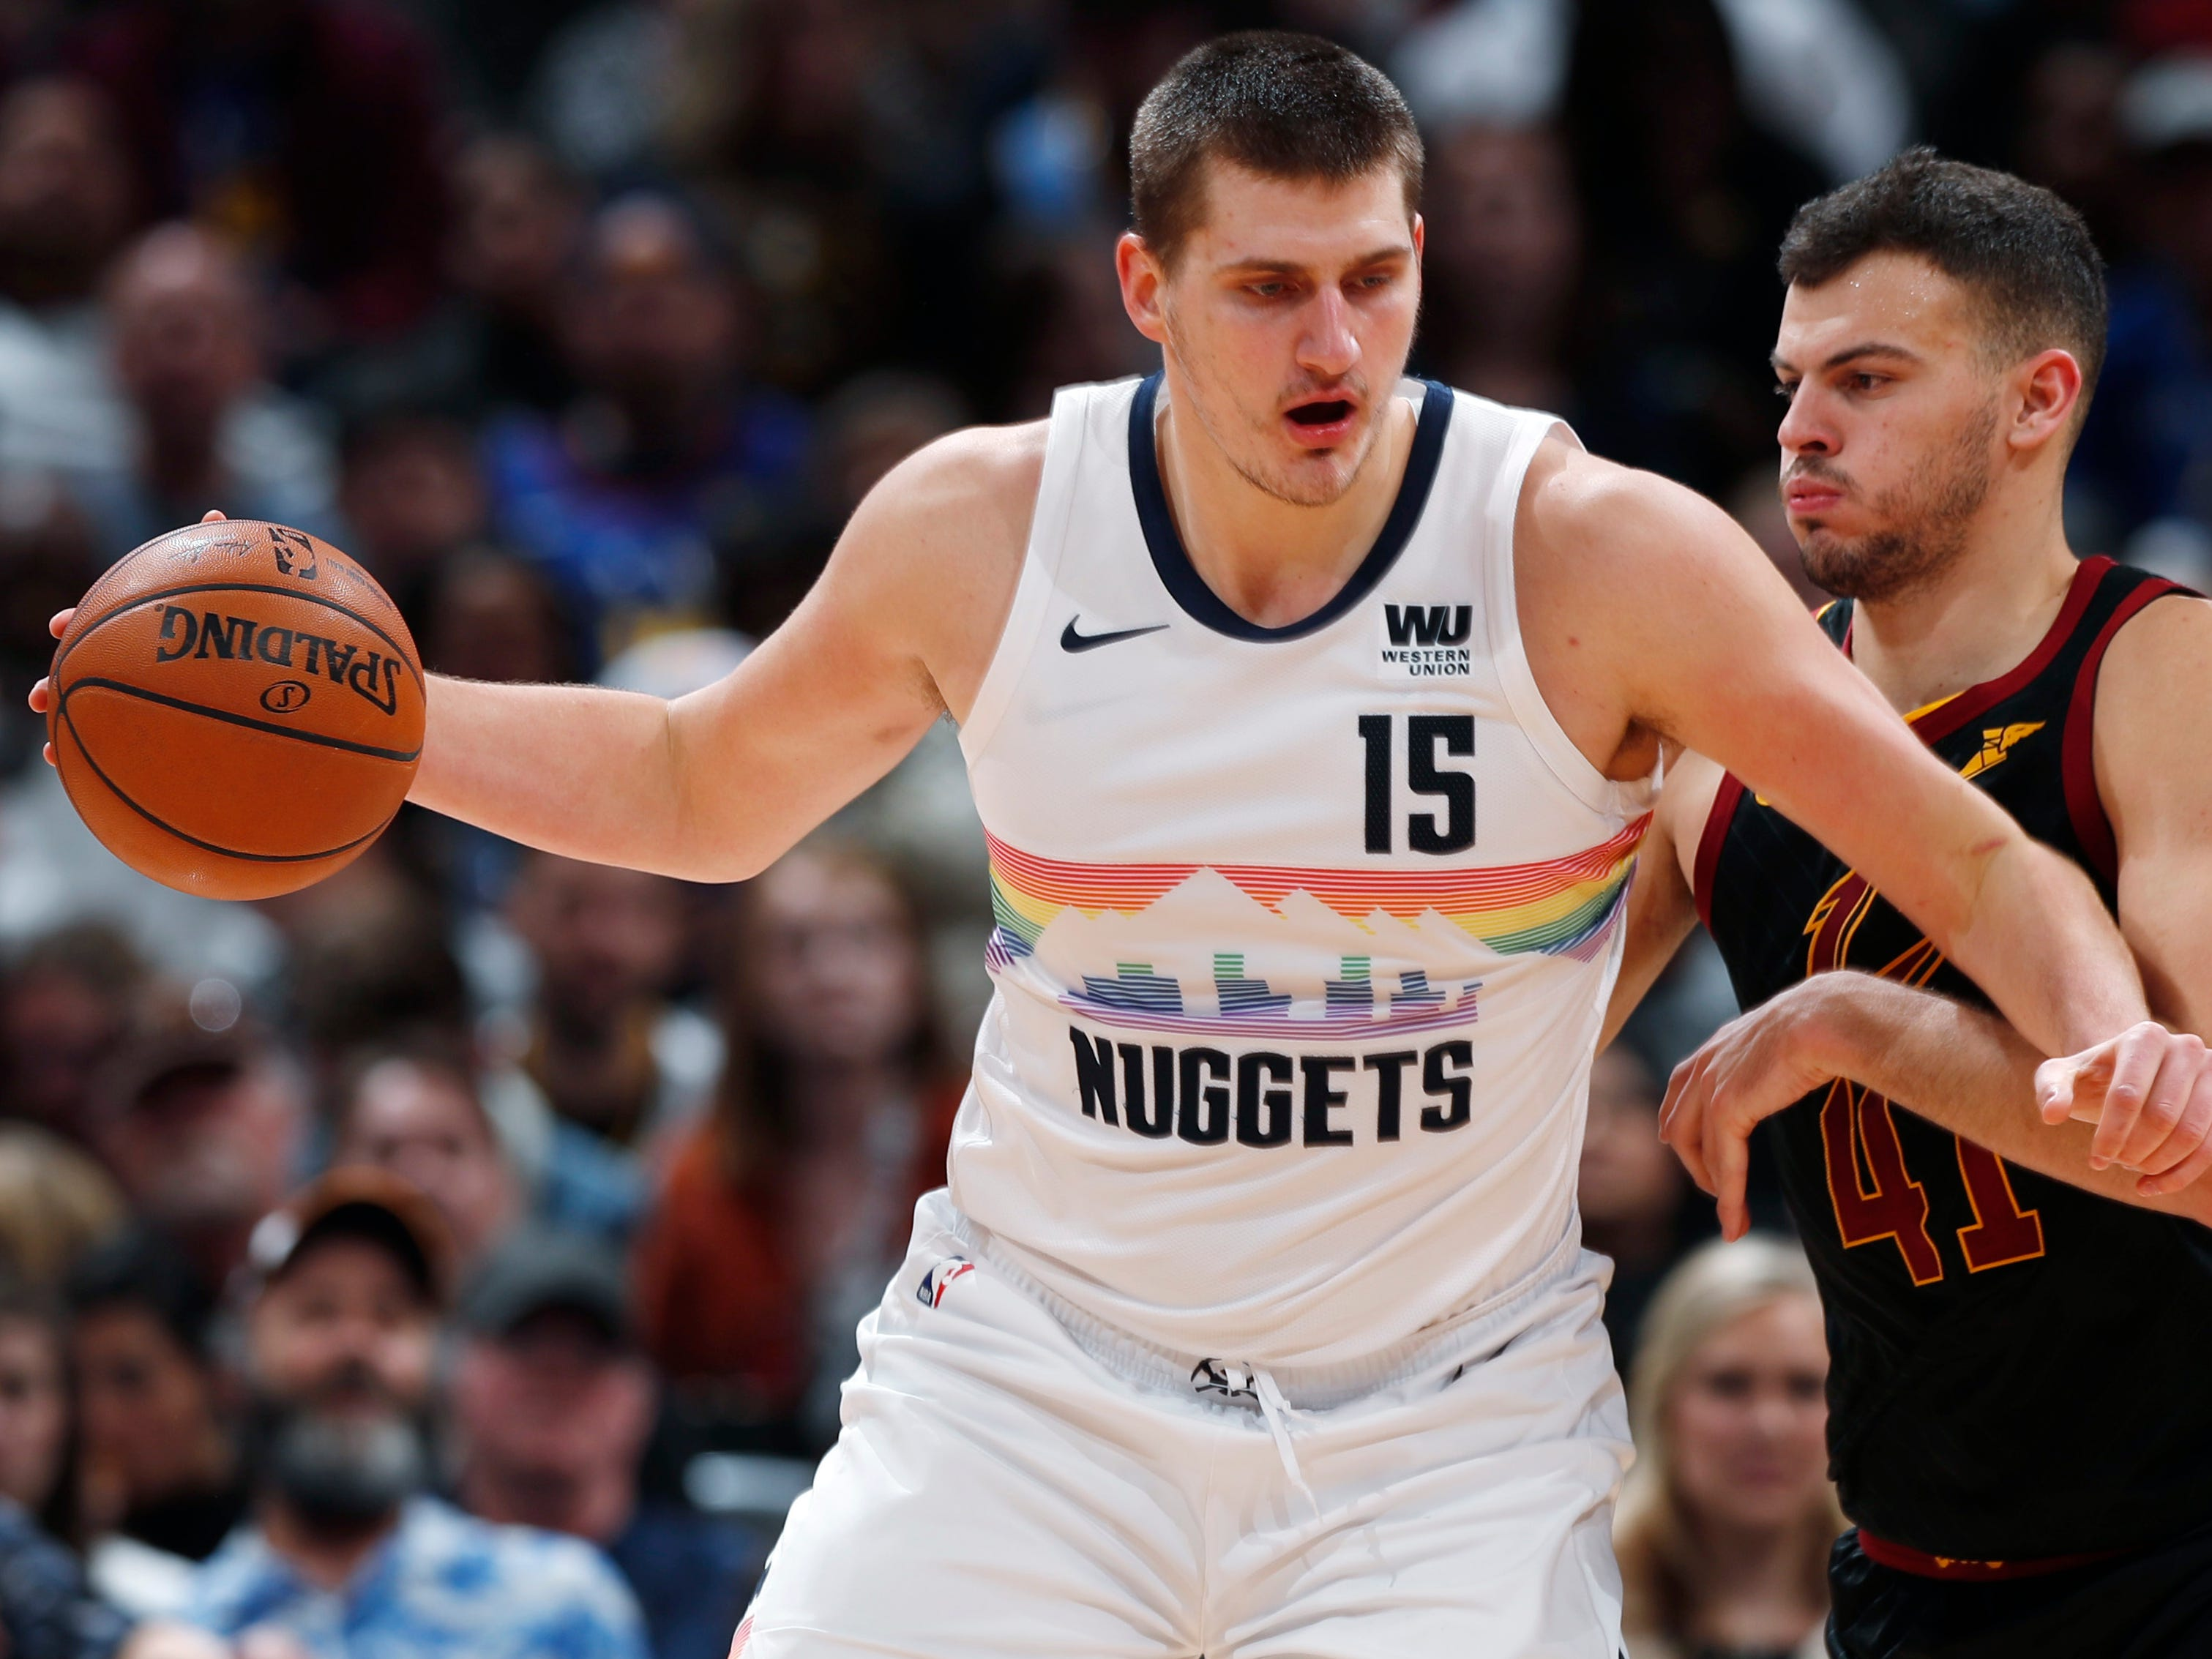 56. Nikola Jokic, Nuggets (Jan. 19): 19 points, 12 assists, 11 rebounds in 124-102 win over Cavaliers (sixth of season).